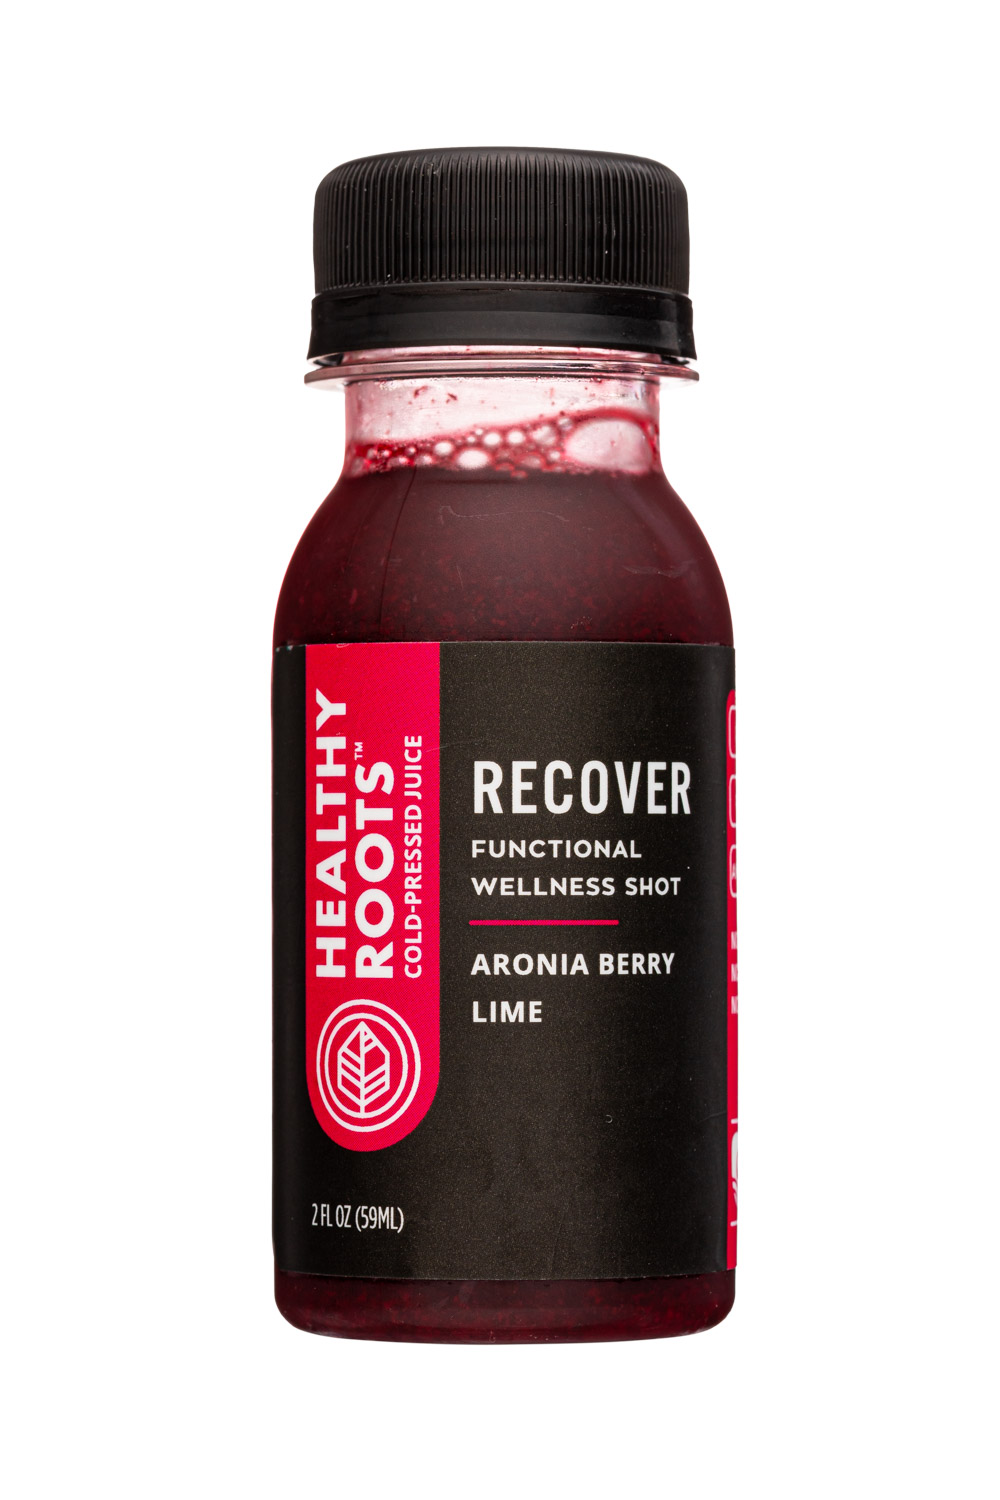 Recover (Aronia Berry, Lime)